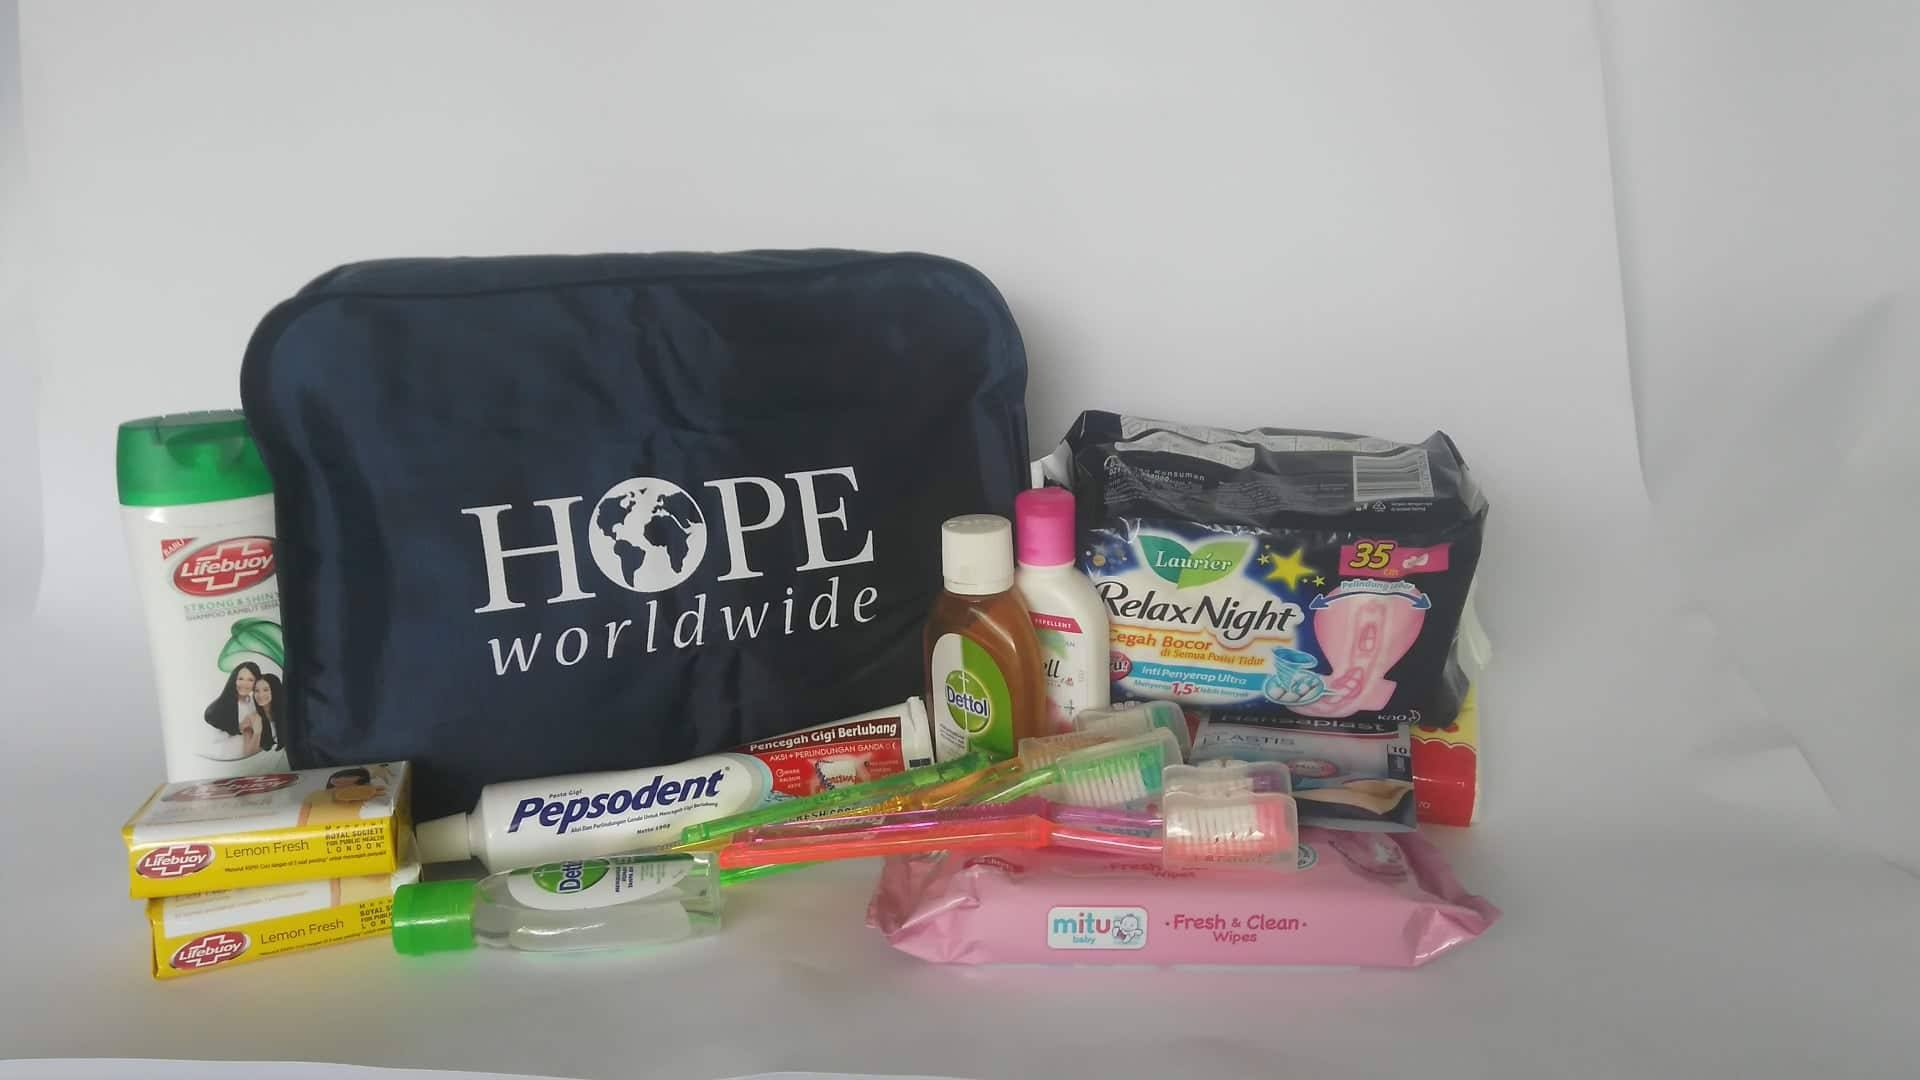 Hygiene kit (for a man): Shampoo Softsoap Men's razor Shaving cream Toothbrush Toothpaste Towel Deodorant Mouthwash Brush or comb Large printed Ziploc bag